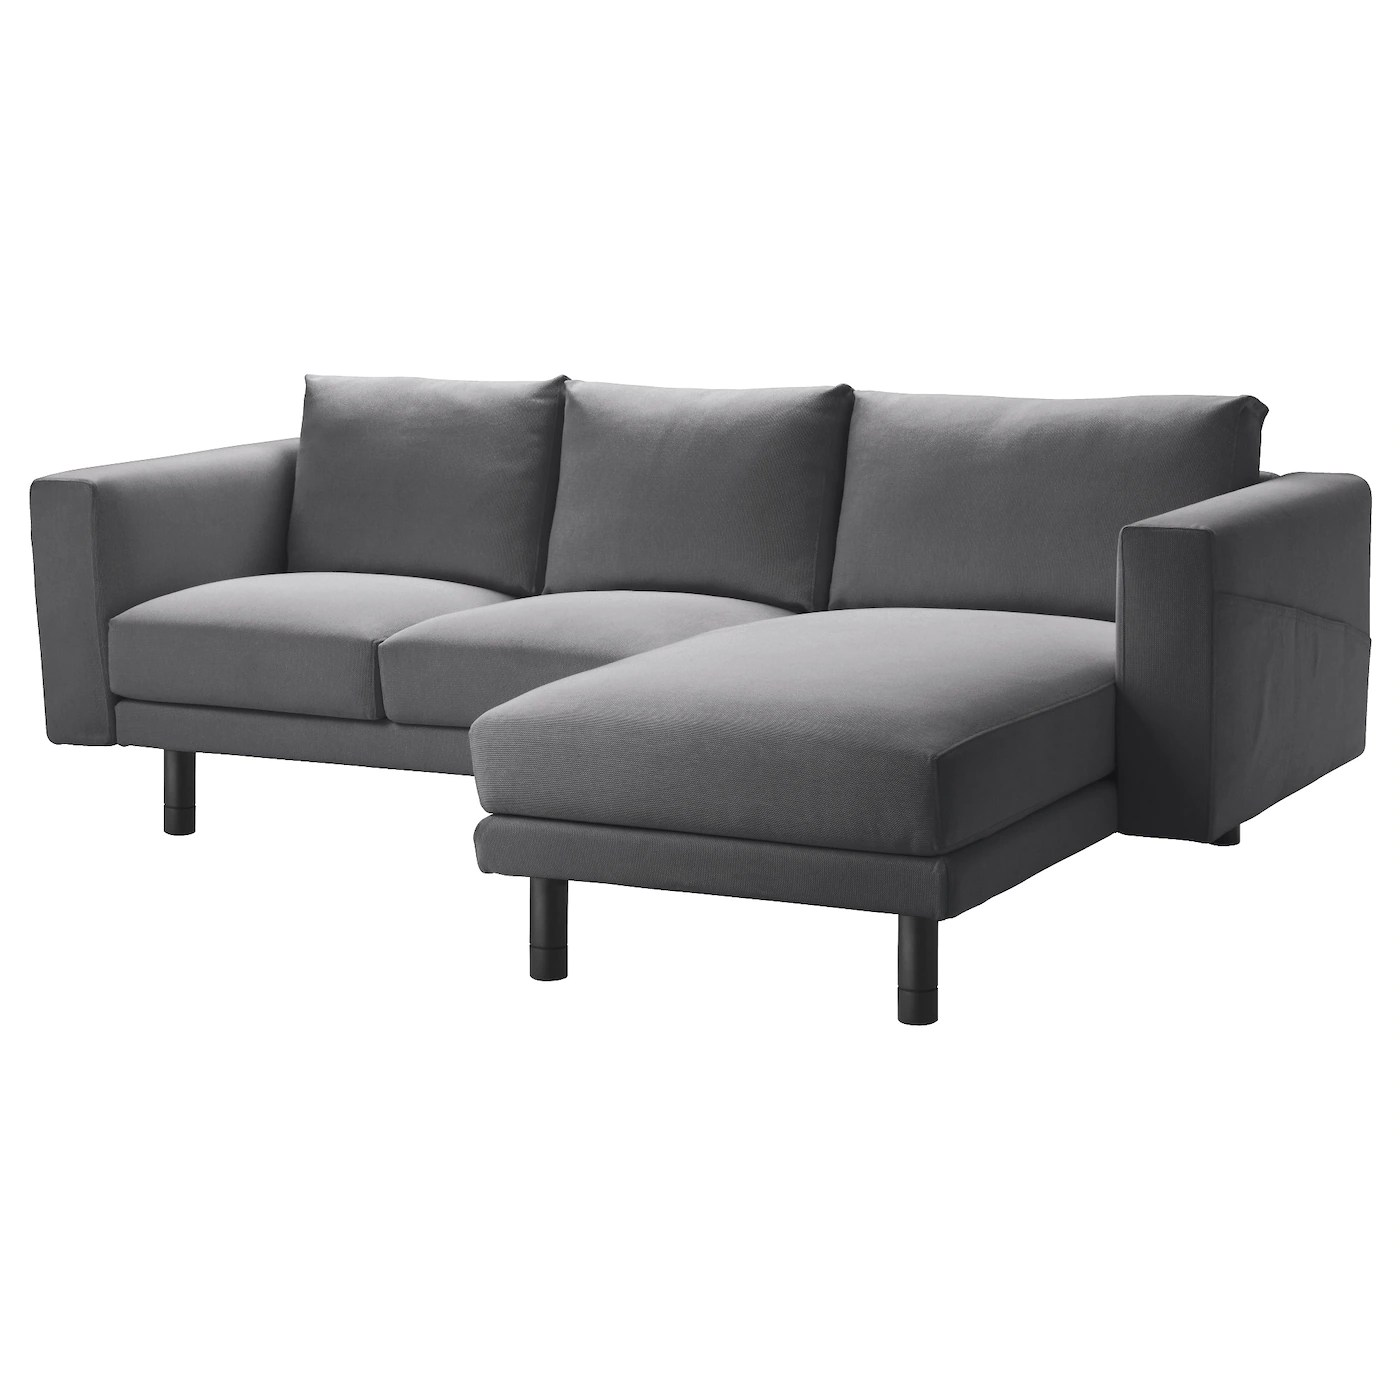 dark grey sectional sofa with chaise cheap l shaped singapore norsborg two seat longue finnsta